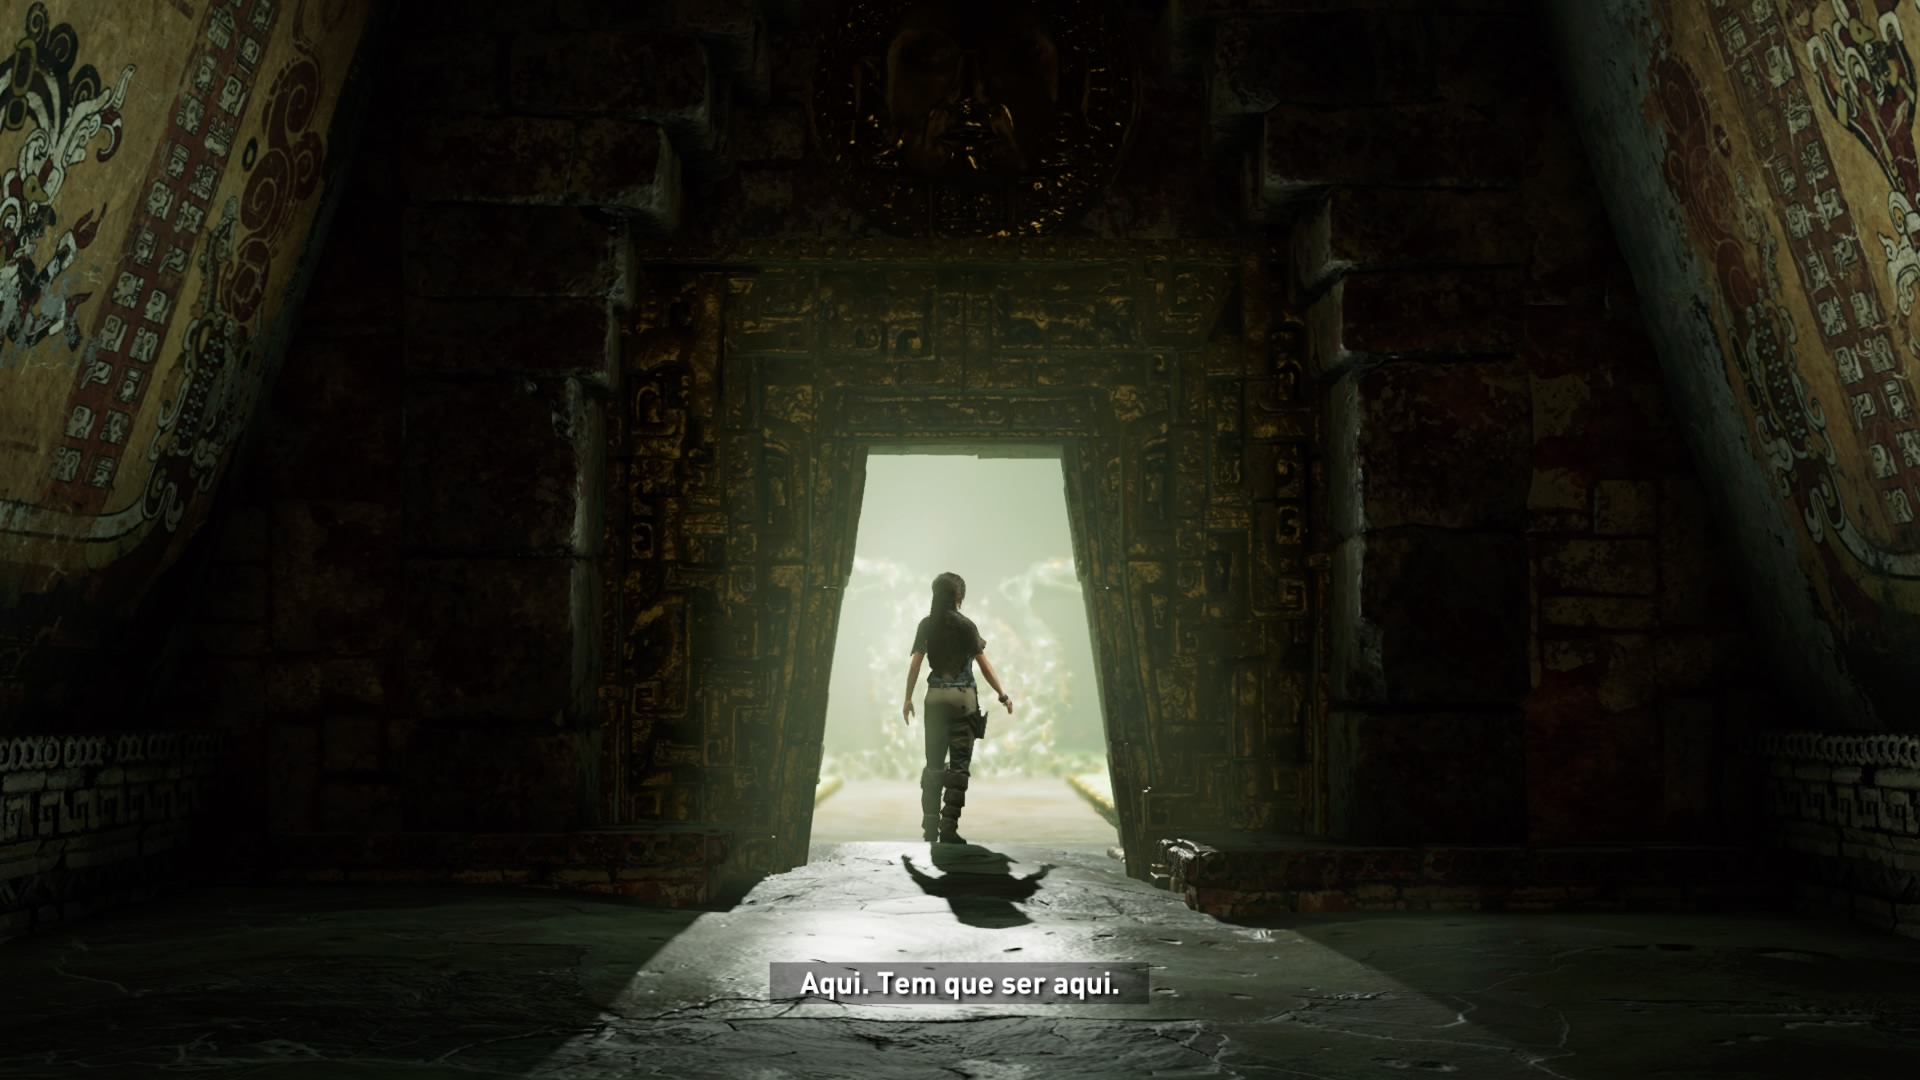 [Análise] Shadow of the Tomb Raider: Vale a Pena? 8